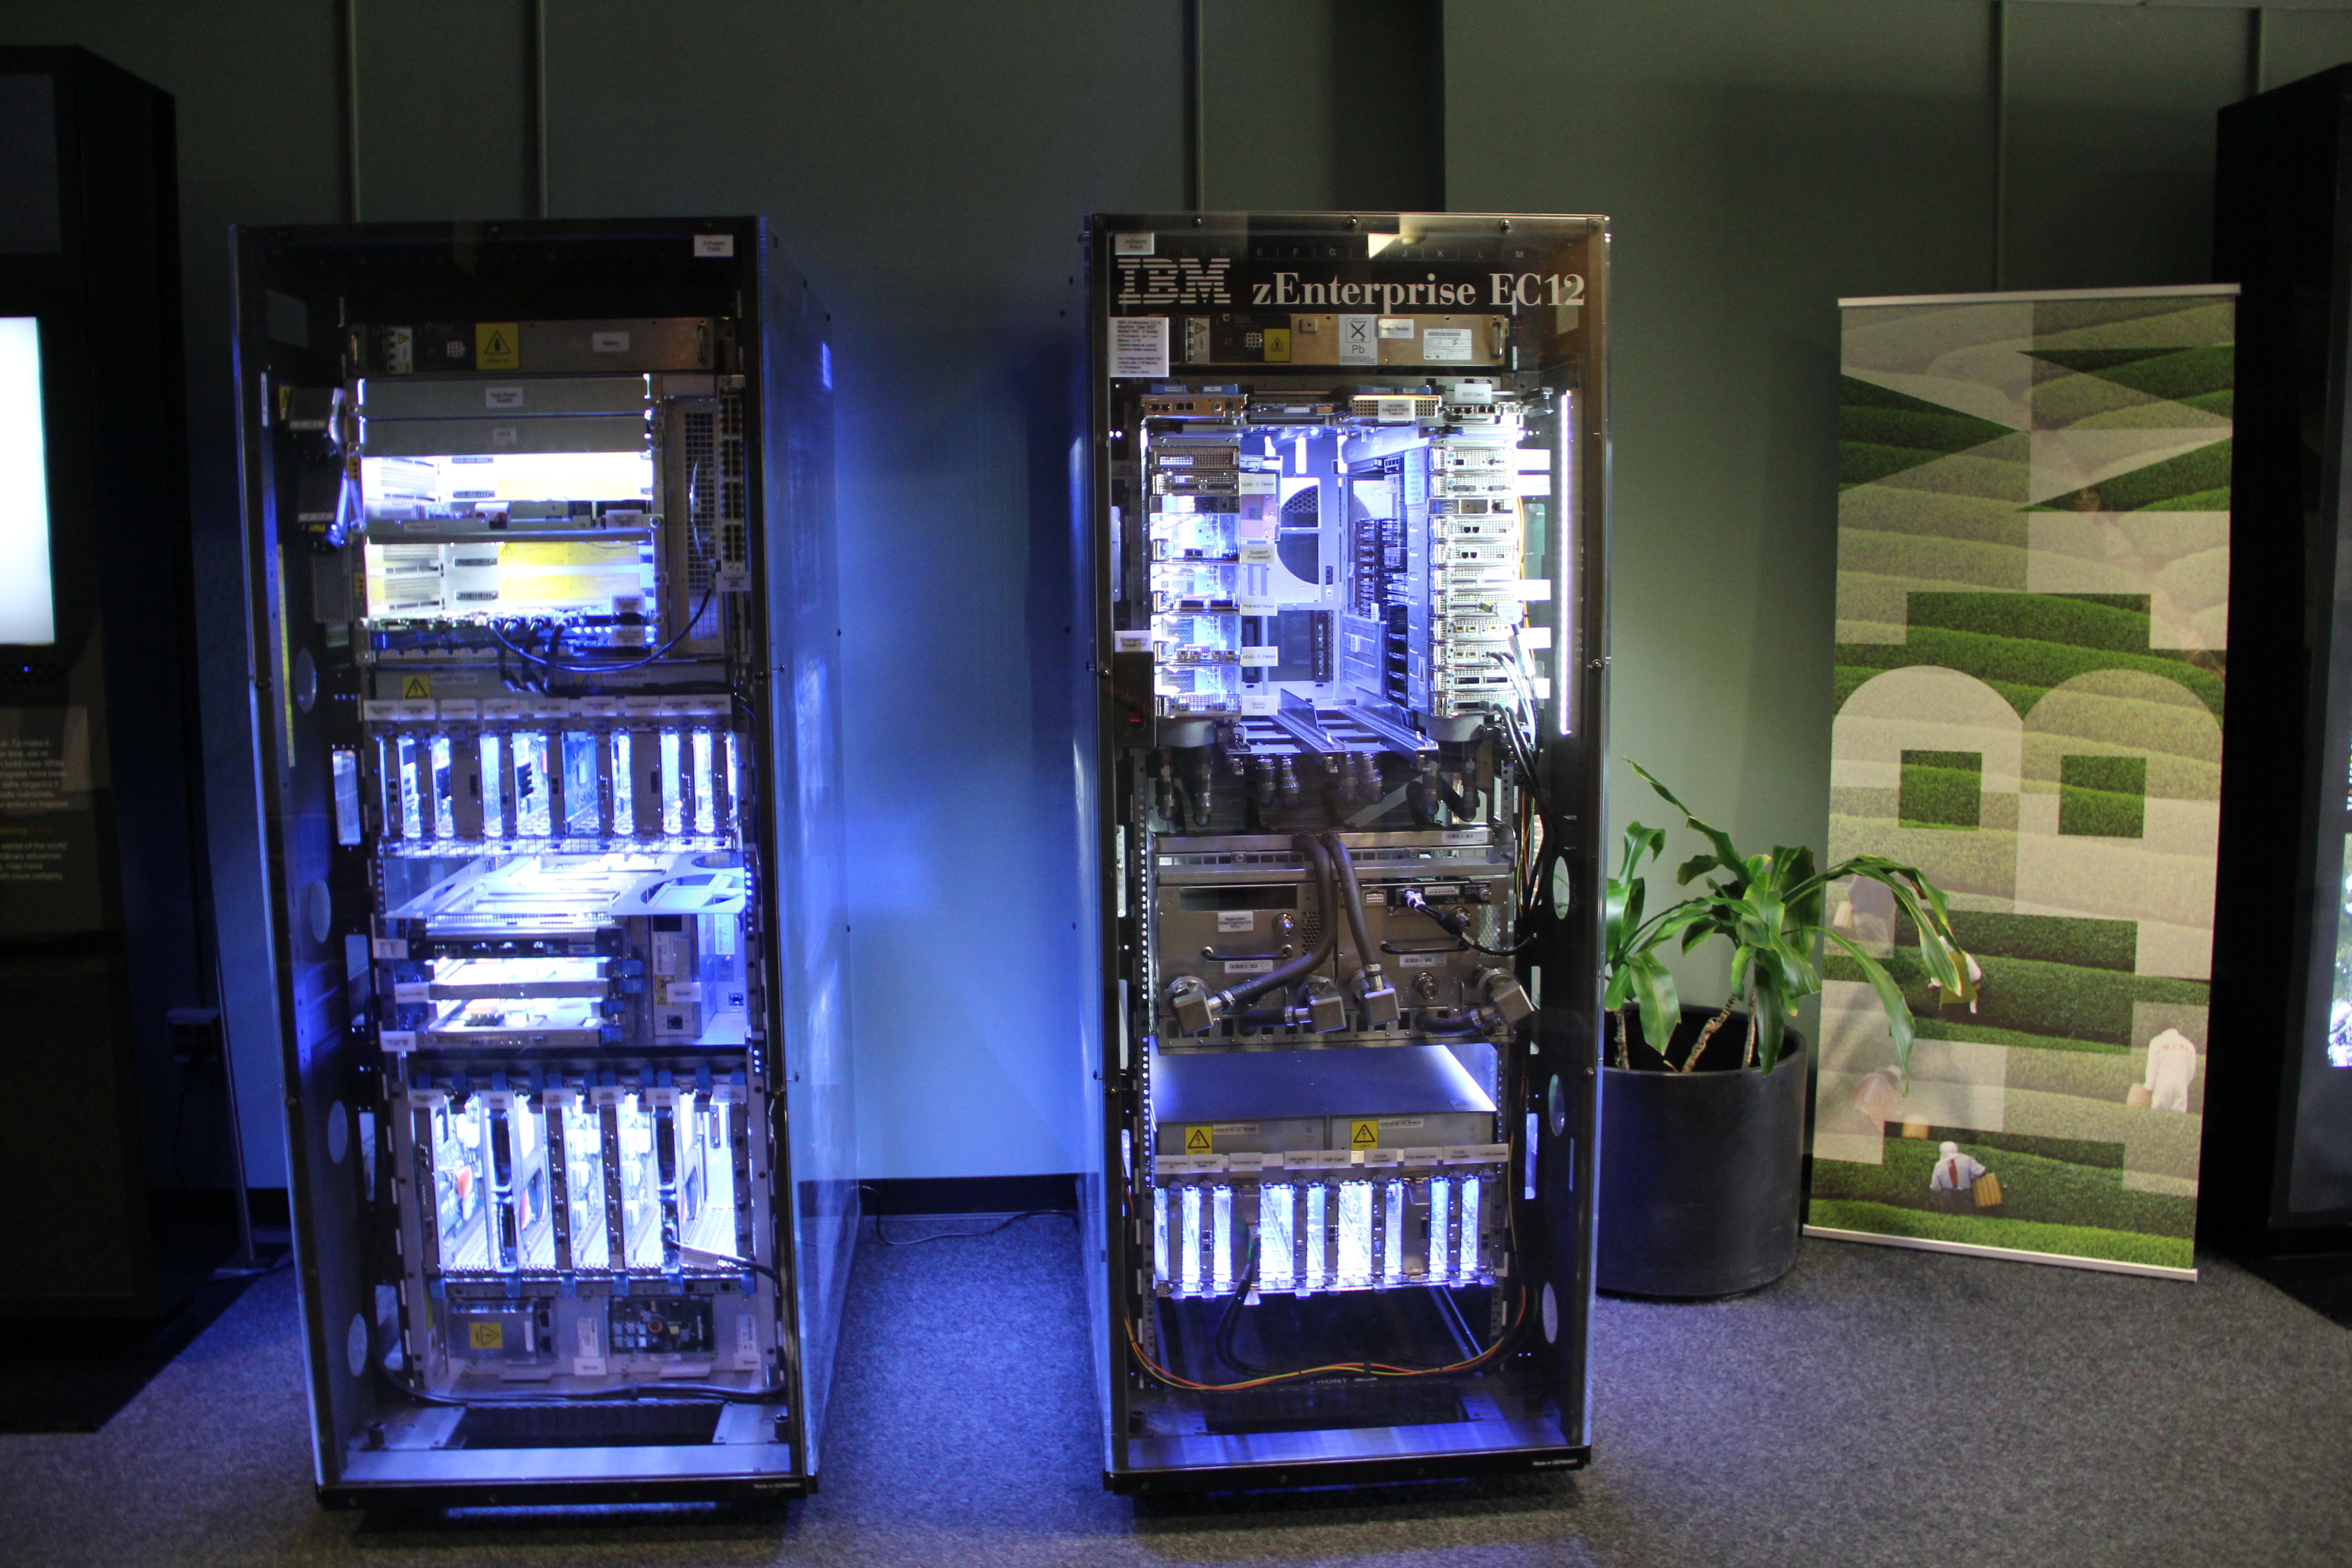 ibm 2 In early trading monday, ibm's shares were down more than 2 percent to around $12180 red hat shares, meanwhile, were soaring, up about 48 percent to around $17250.